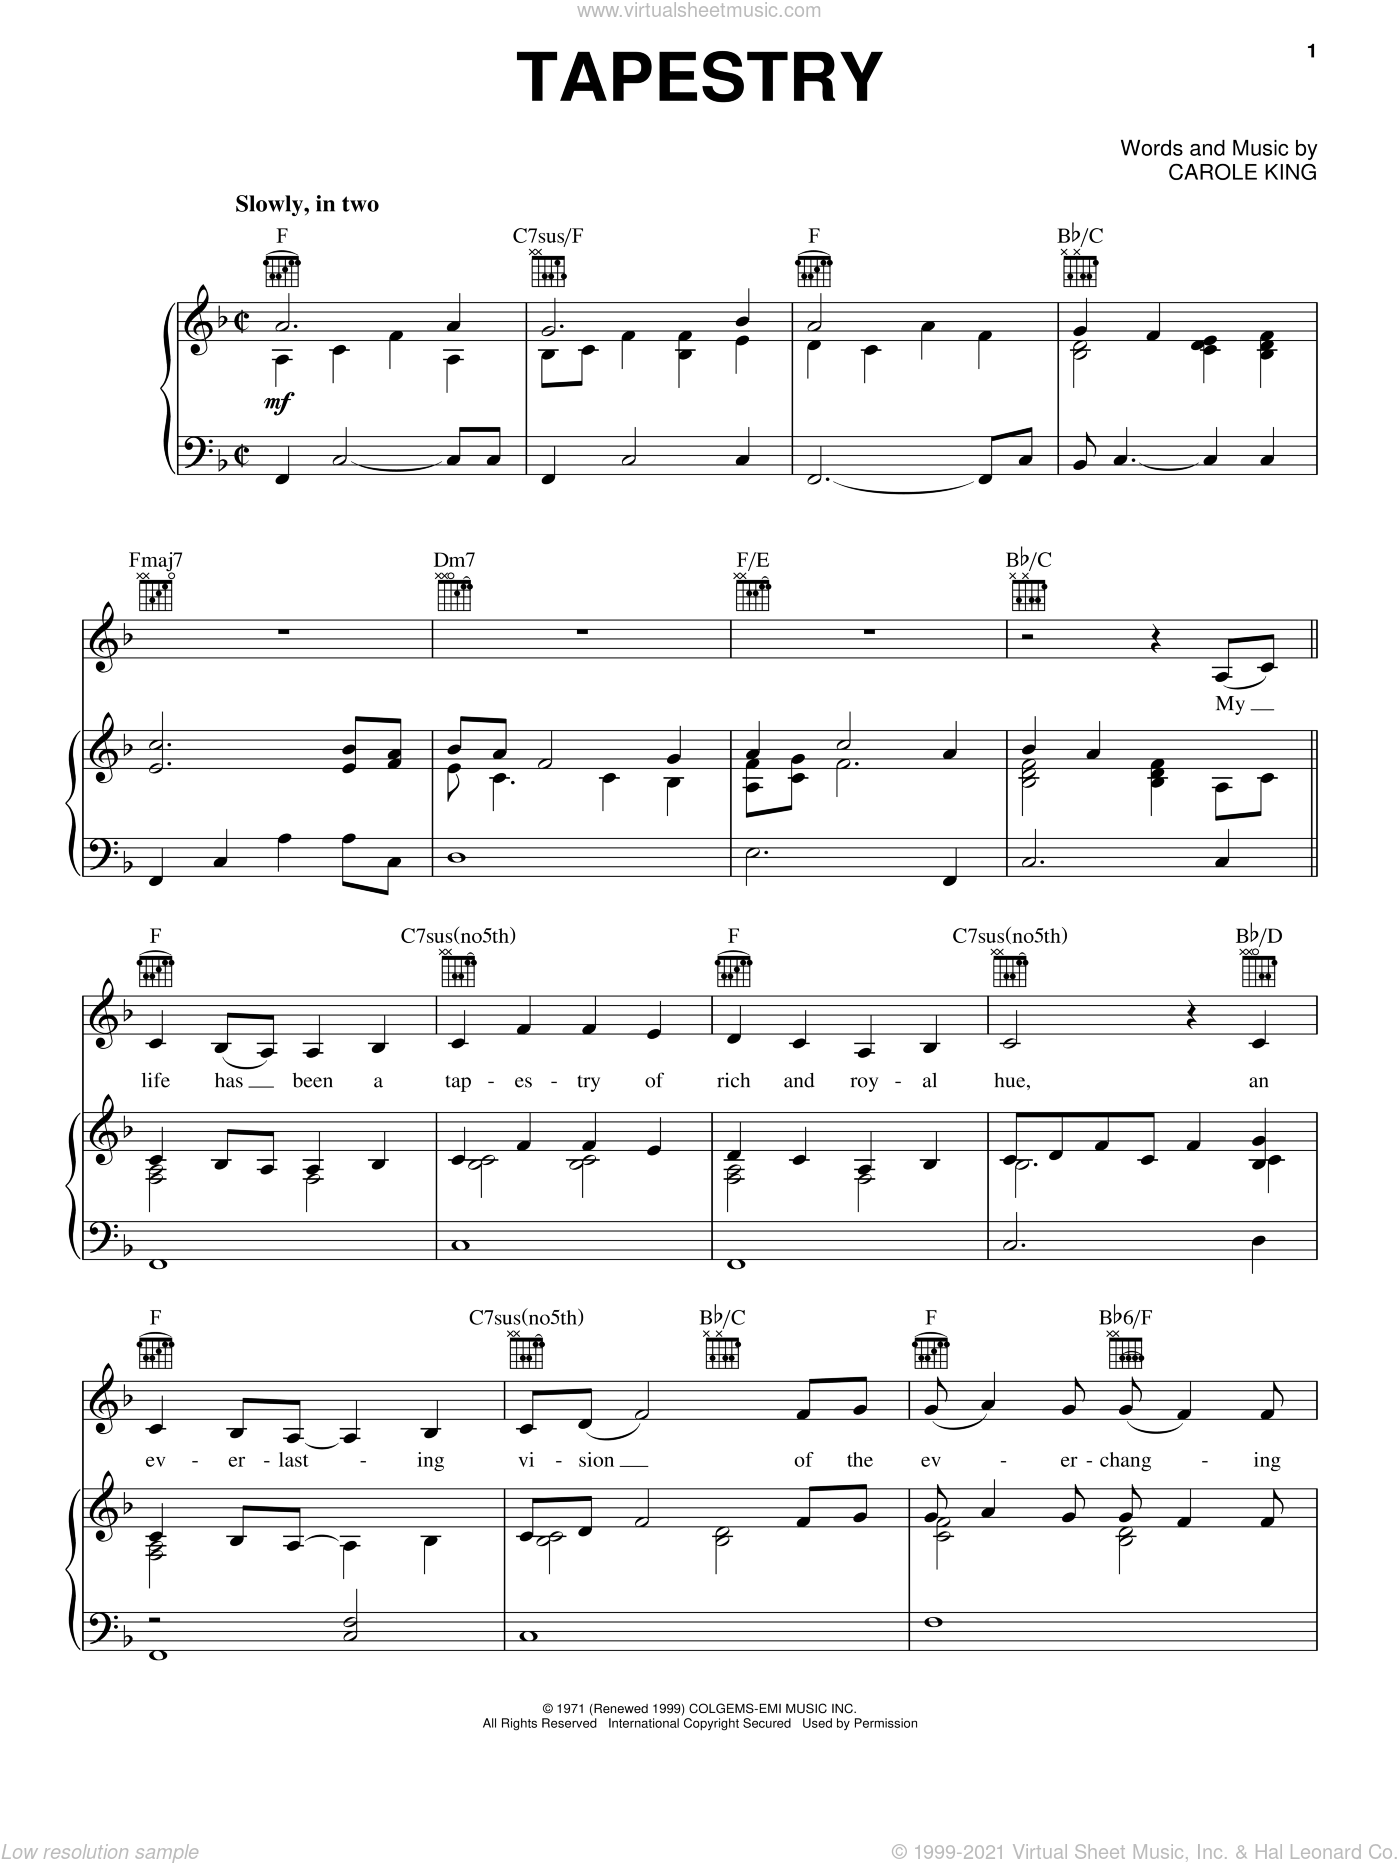 Tapestry sheet music for voice, piano or guitar by Carole King